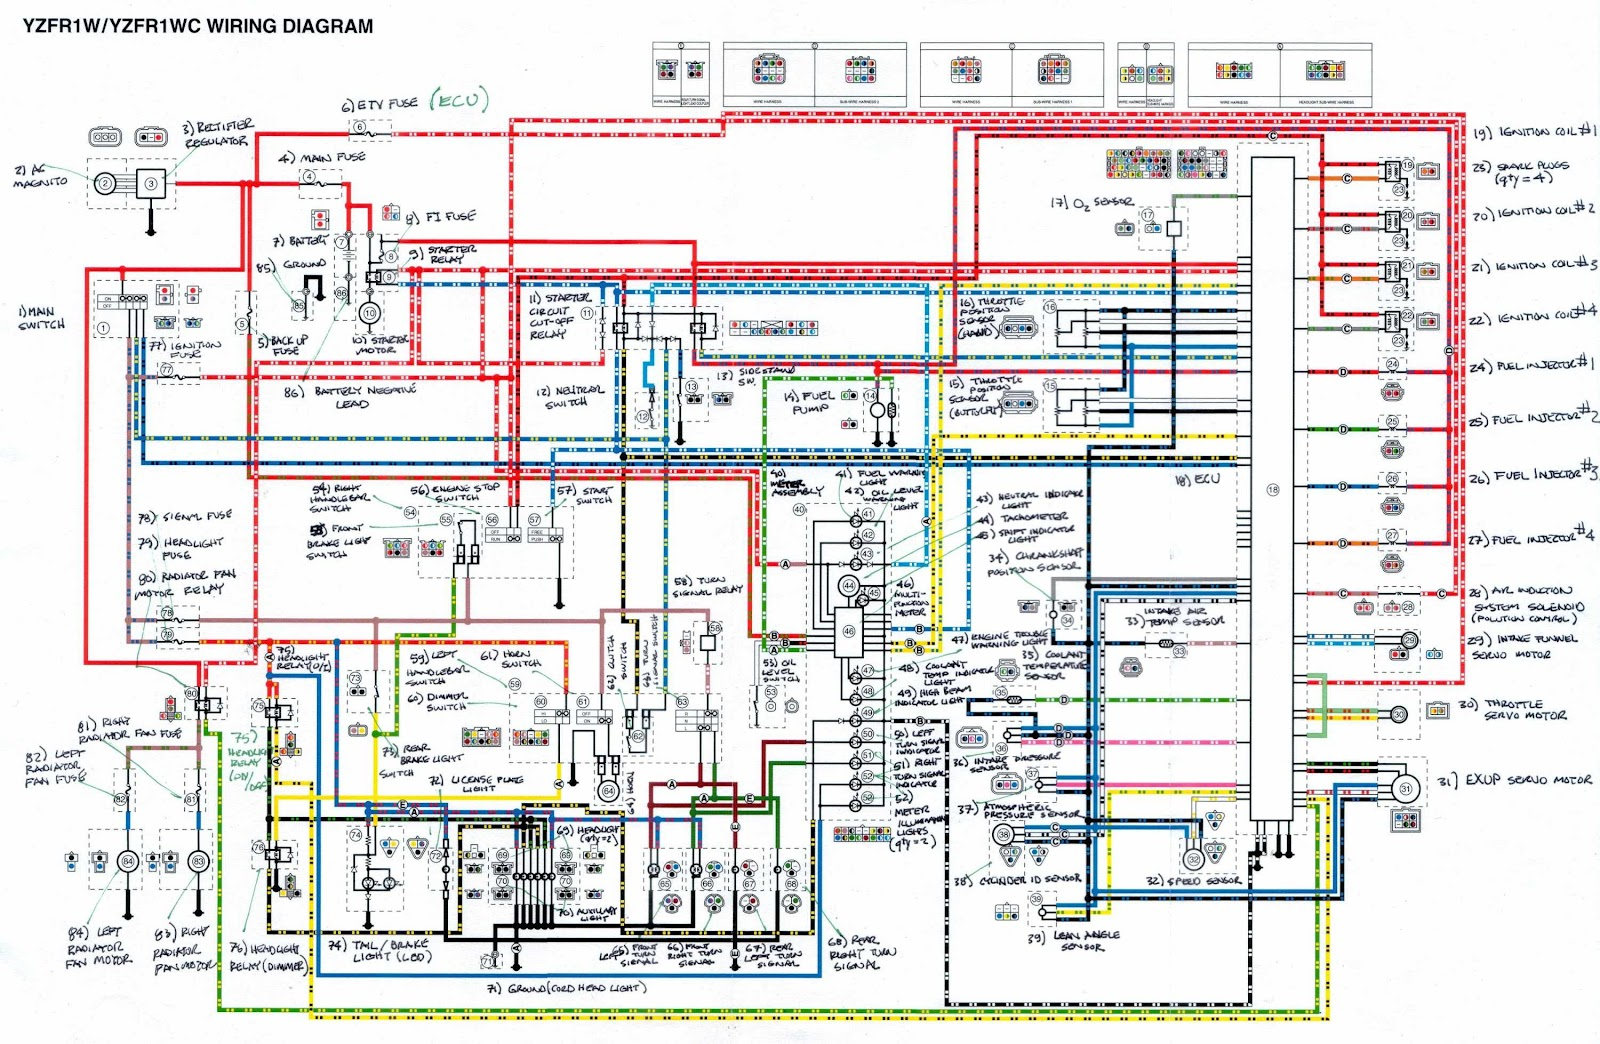 medium resolution of yamaha 535 wiring diagram